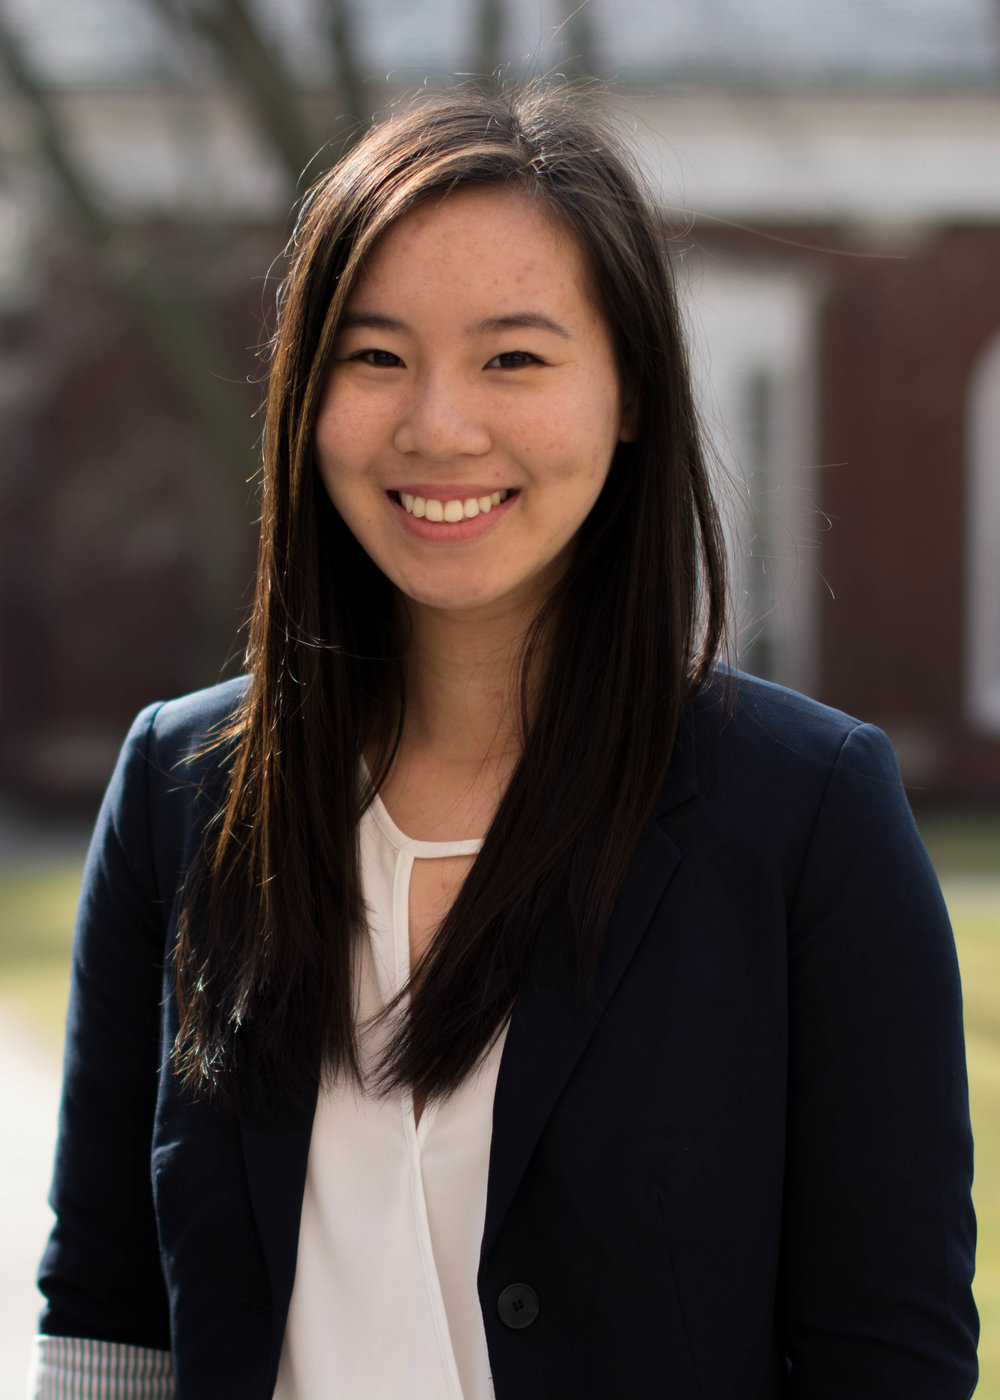 CHERRI WANG '20 | MANAGER - Born and raised in Pleasanton, California, Cherri is a rising sophomore who lives in Pforzheimer House and has finally settled on concentrating in Applied Math with a focus in Economics. Aside from HSA, Cherri is part of Harvard Women in Business and enjoys performing with the Harvard-Radcliffe Modern Dance Company. In her spare time, Cherri loves reading and napping, but you can probably find her in the dining hall or using up her Board Plus at Lamont Cafe.